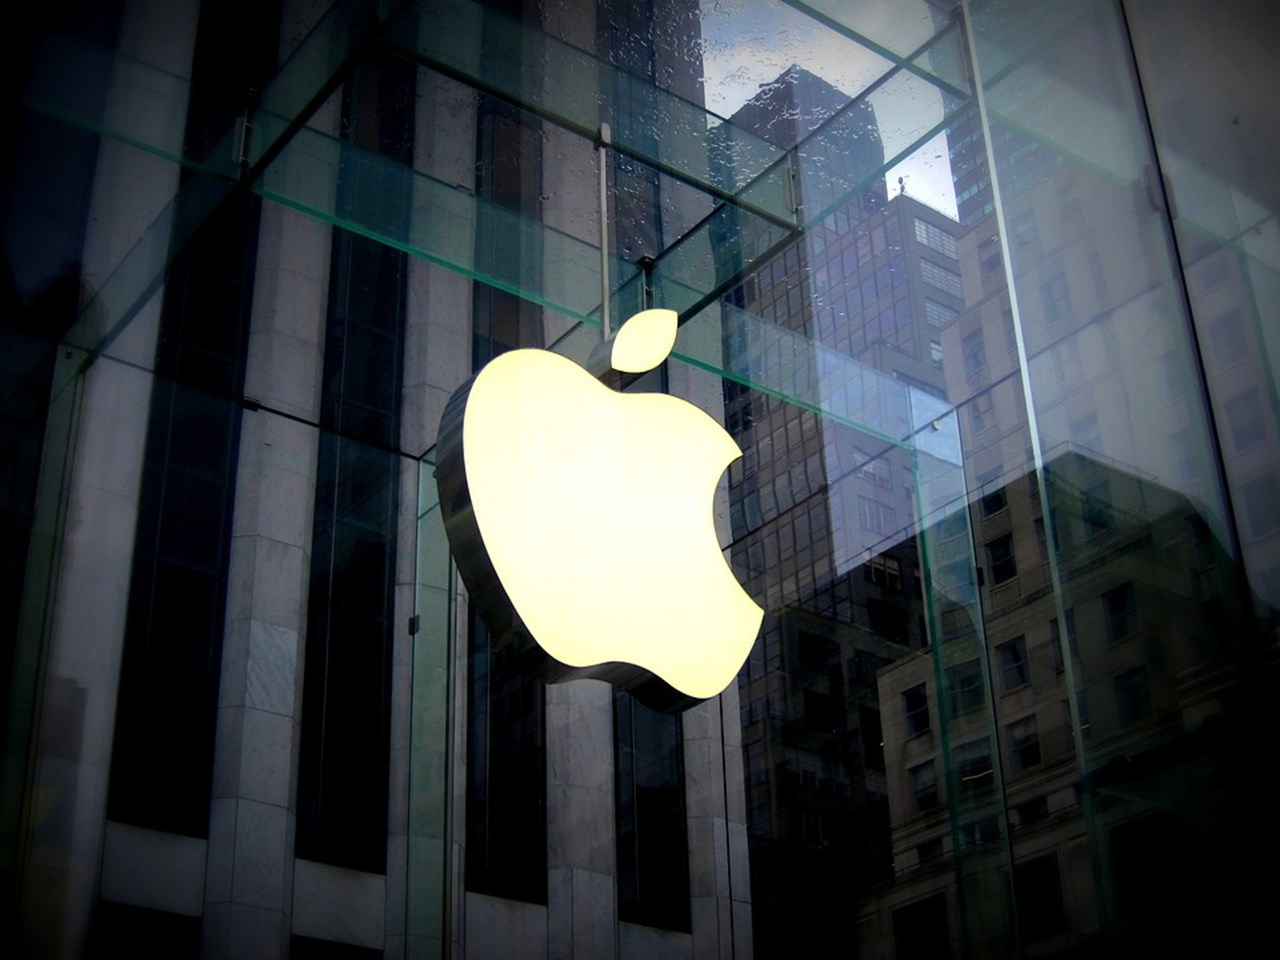 Apple offers dedicated online store with discounts for military veterans